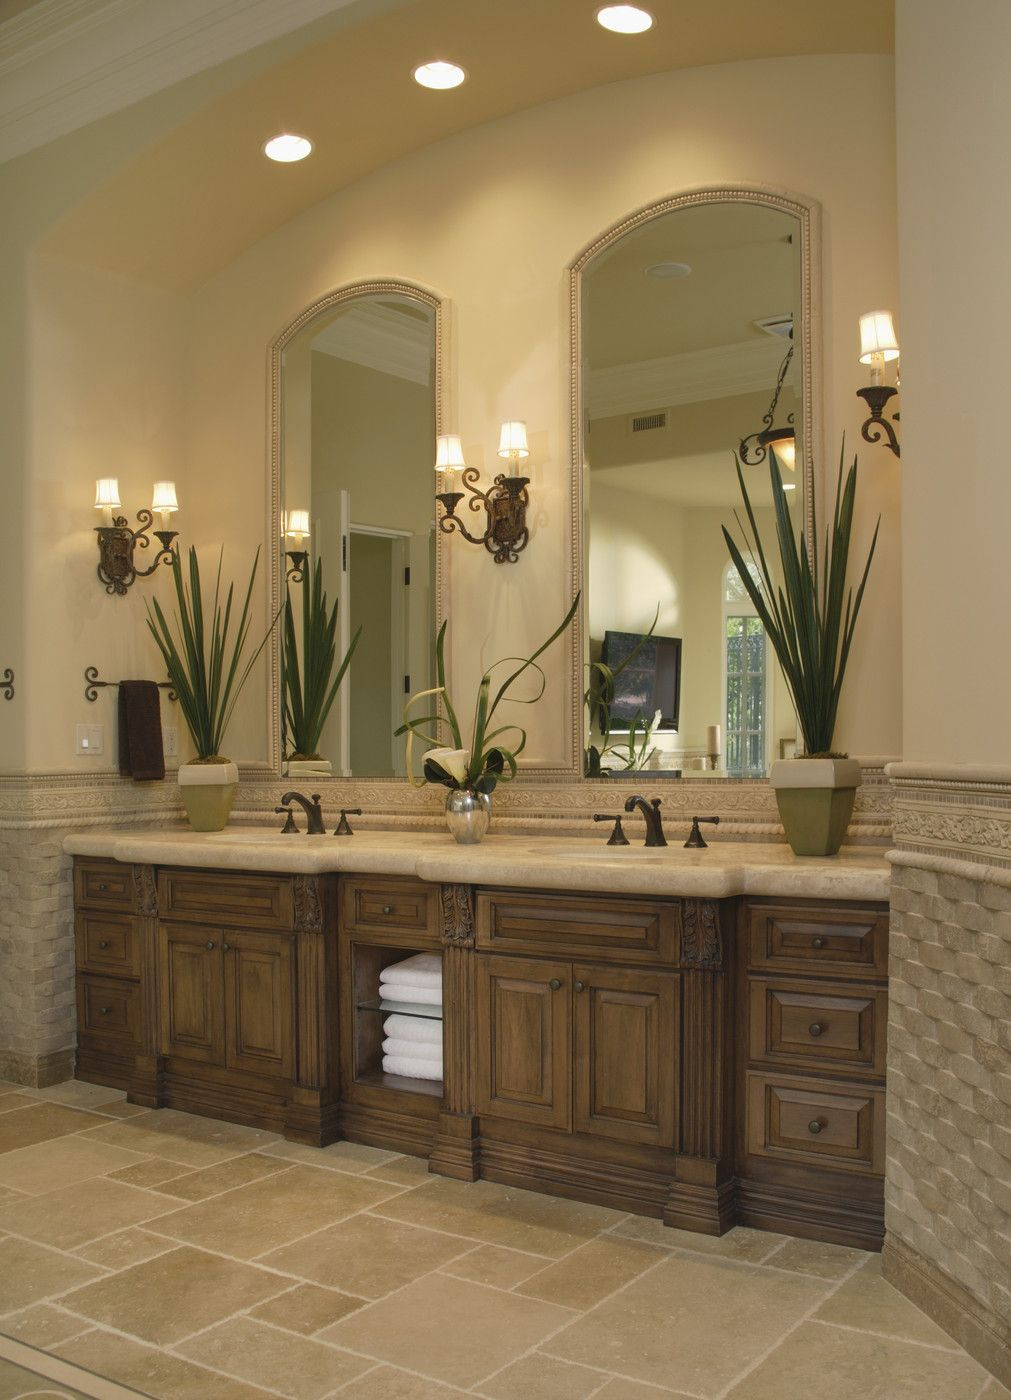 Bathroom vanities with makeup area - Bathroom Photos